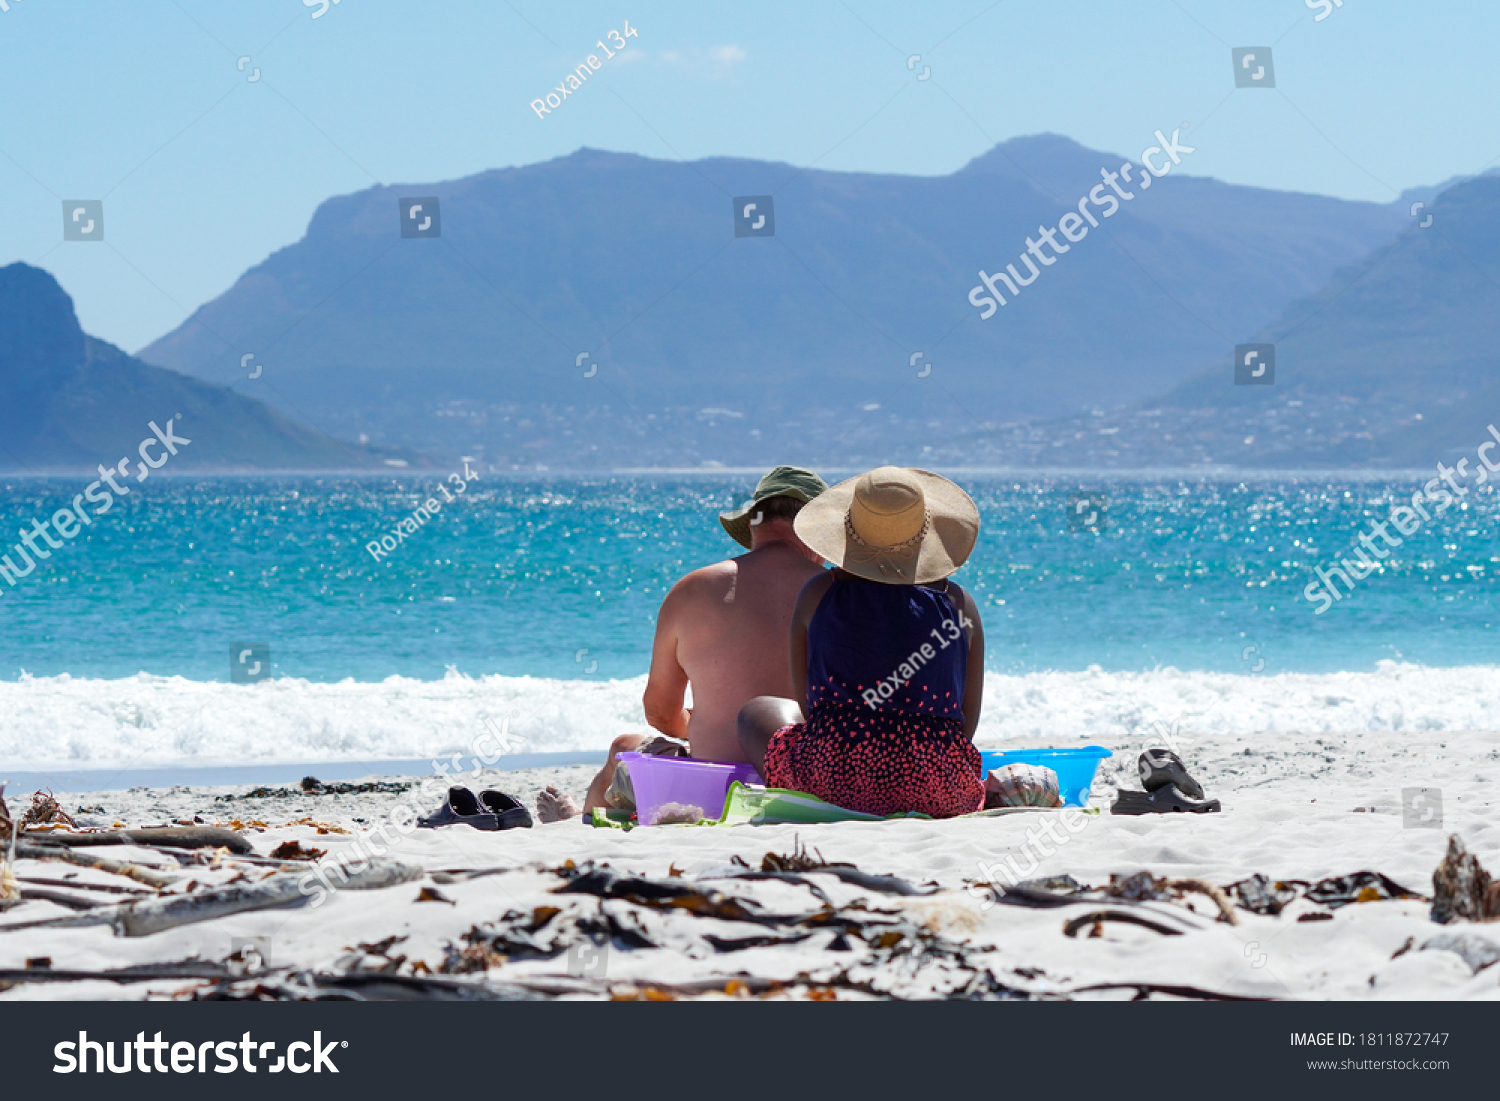 a couple, man and woman, sitting on a beach, with the view of mountains and blue ocean in front of them